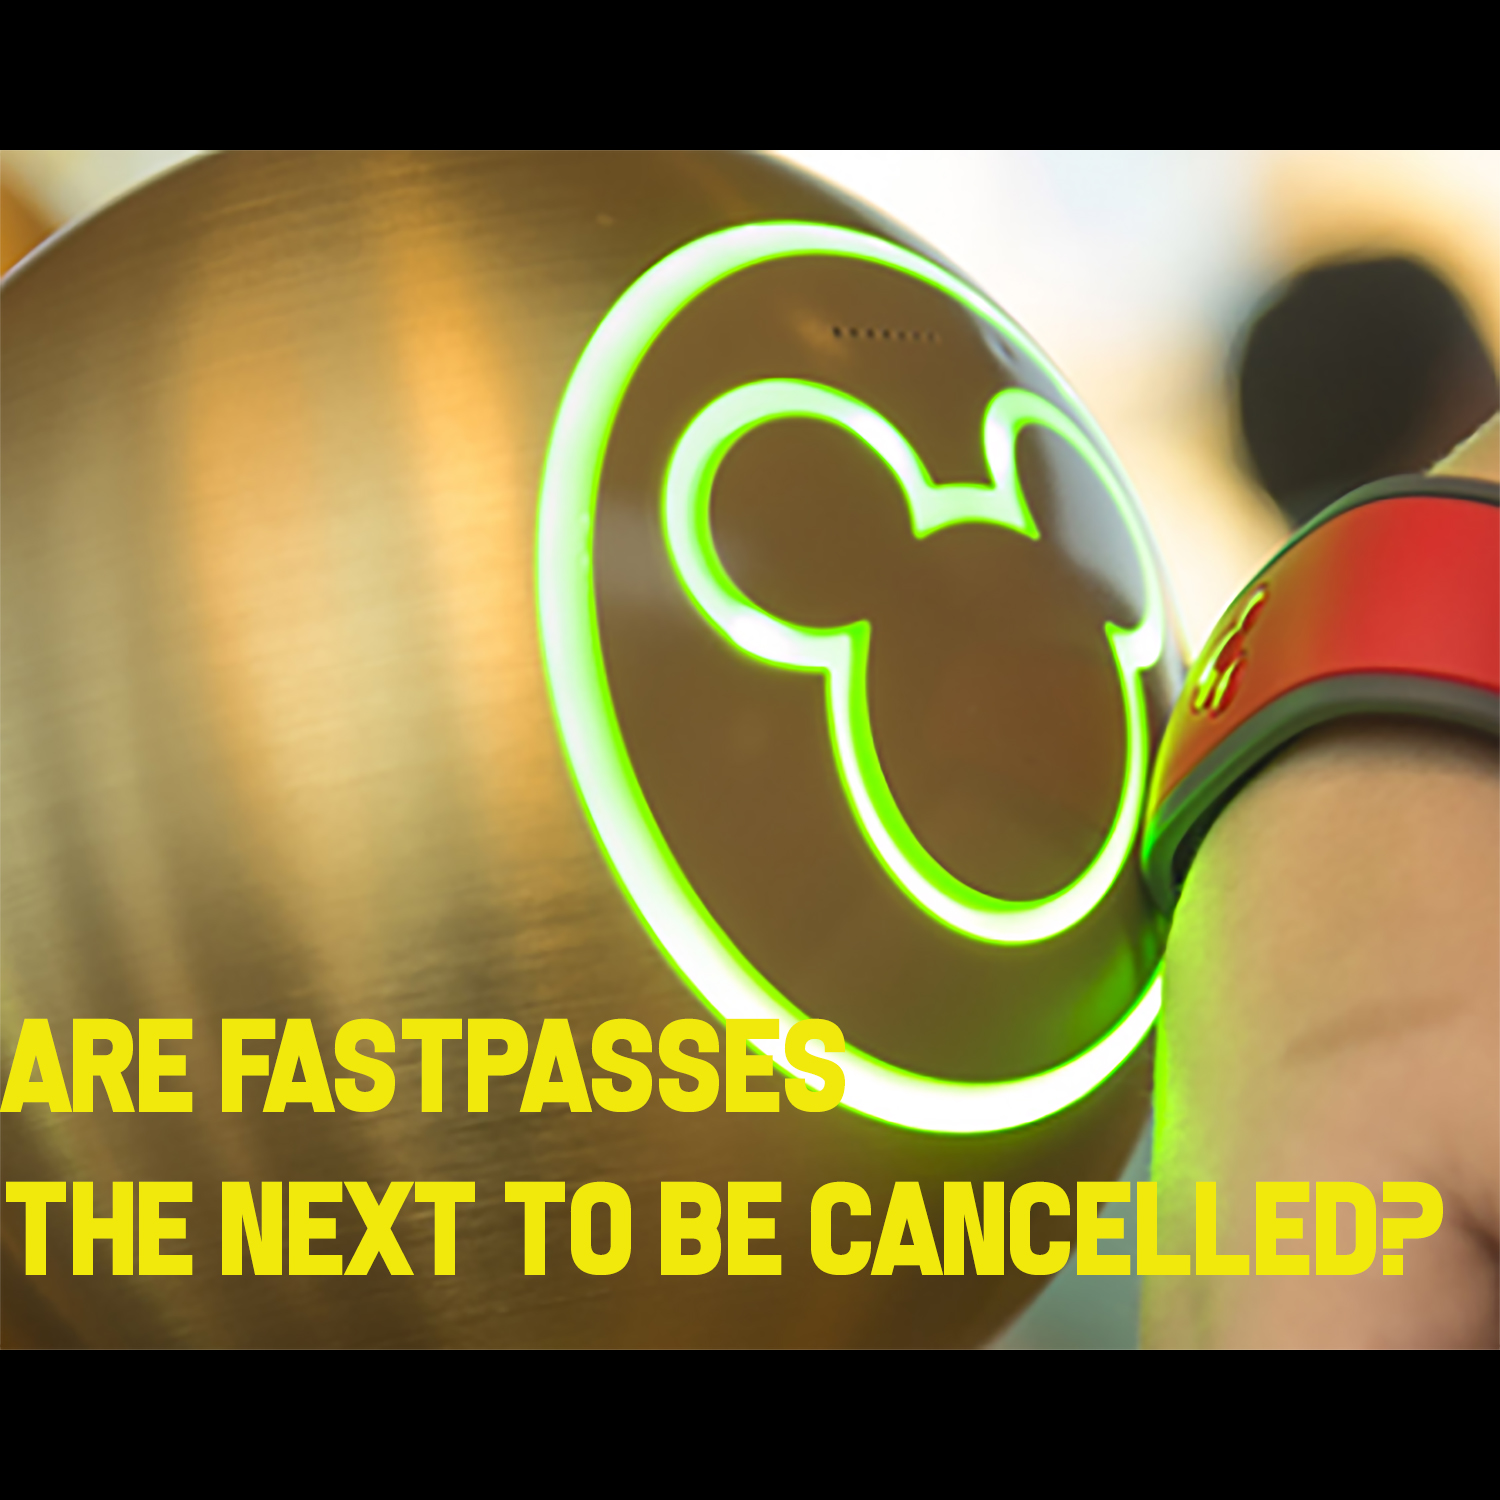 Are FastPasses the Next To Be Cancelled?